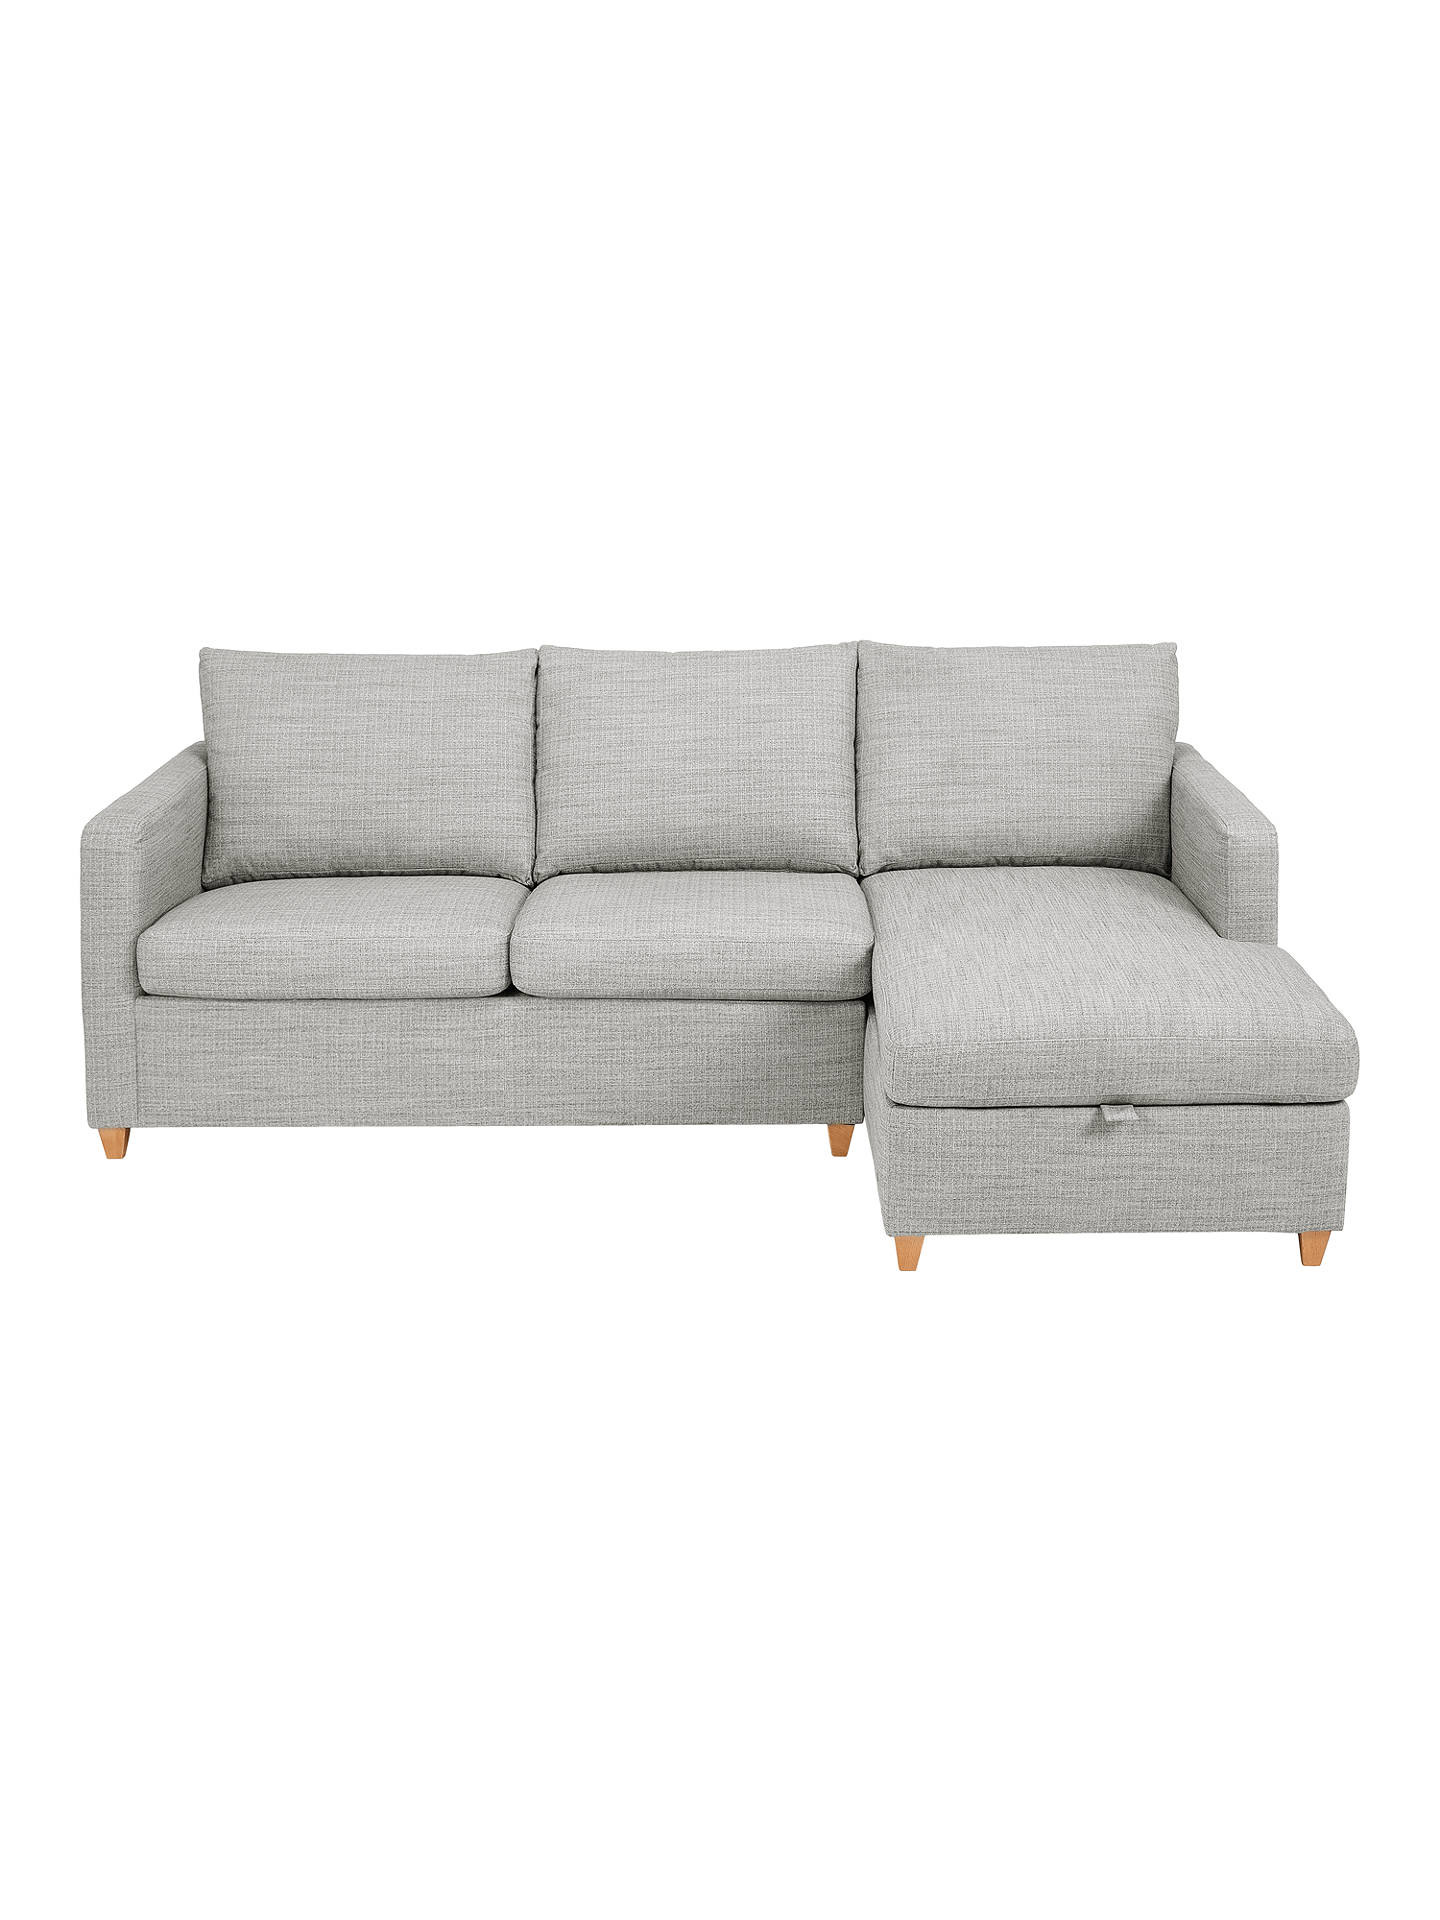 John Lewis & Partners Bailey RHF Chaise End Sofa Bed at John Lewis ...